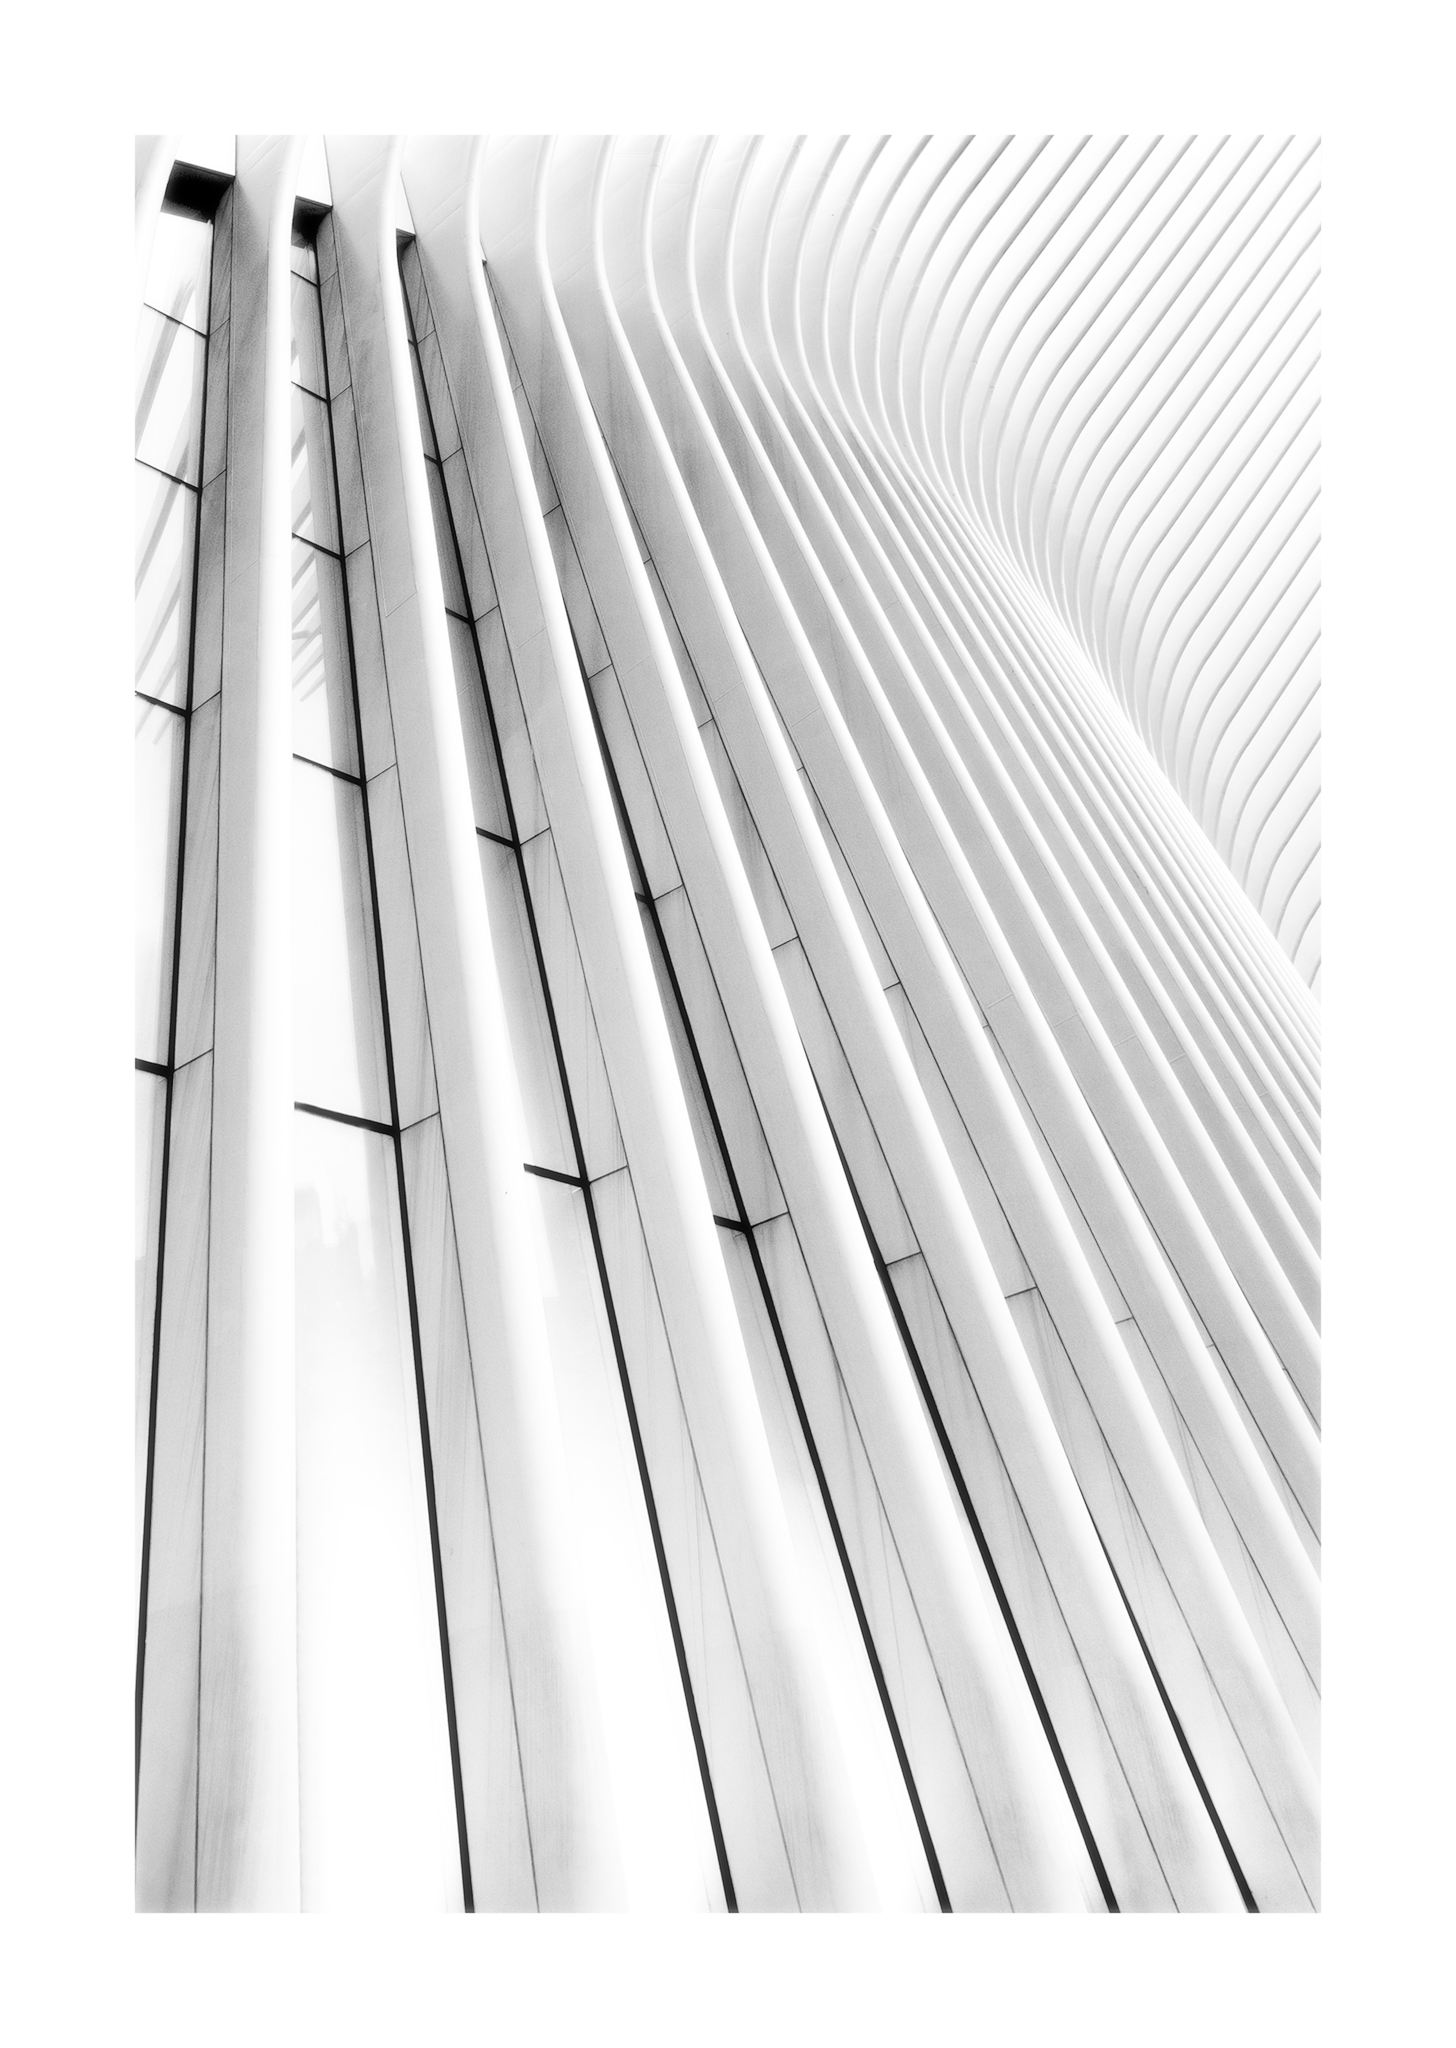 The Oculus, NYC...